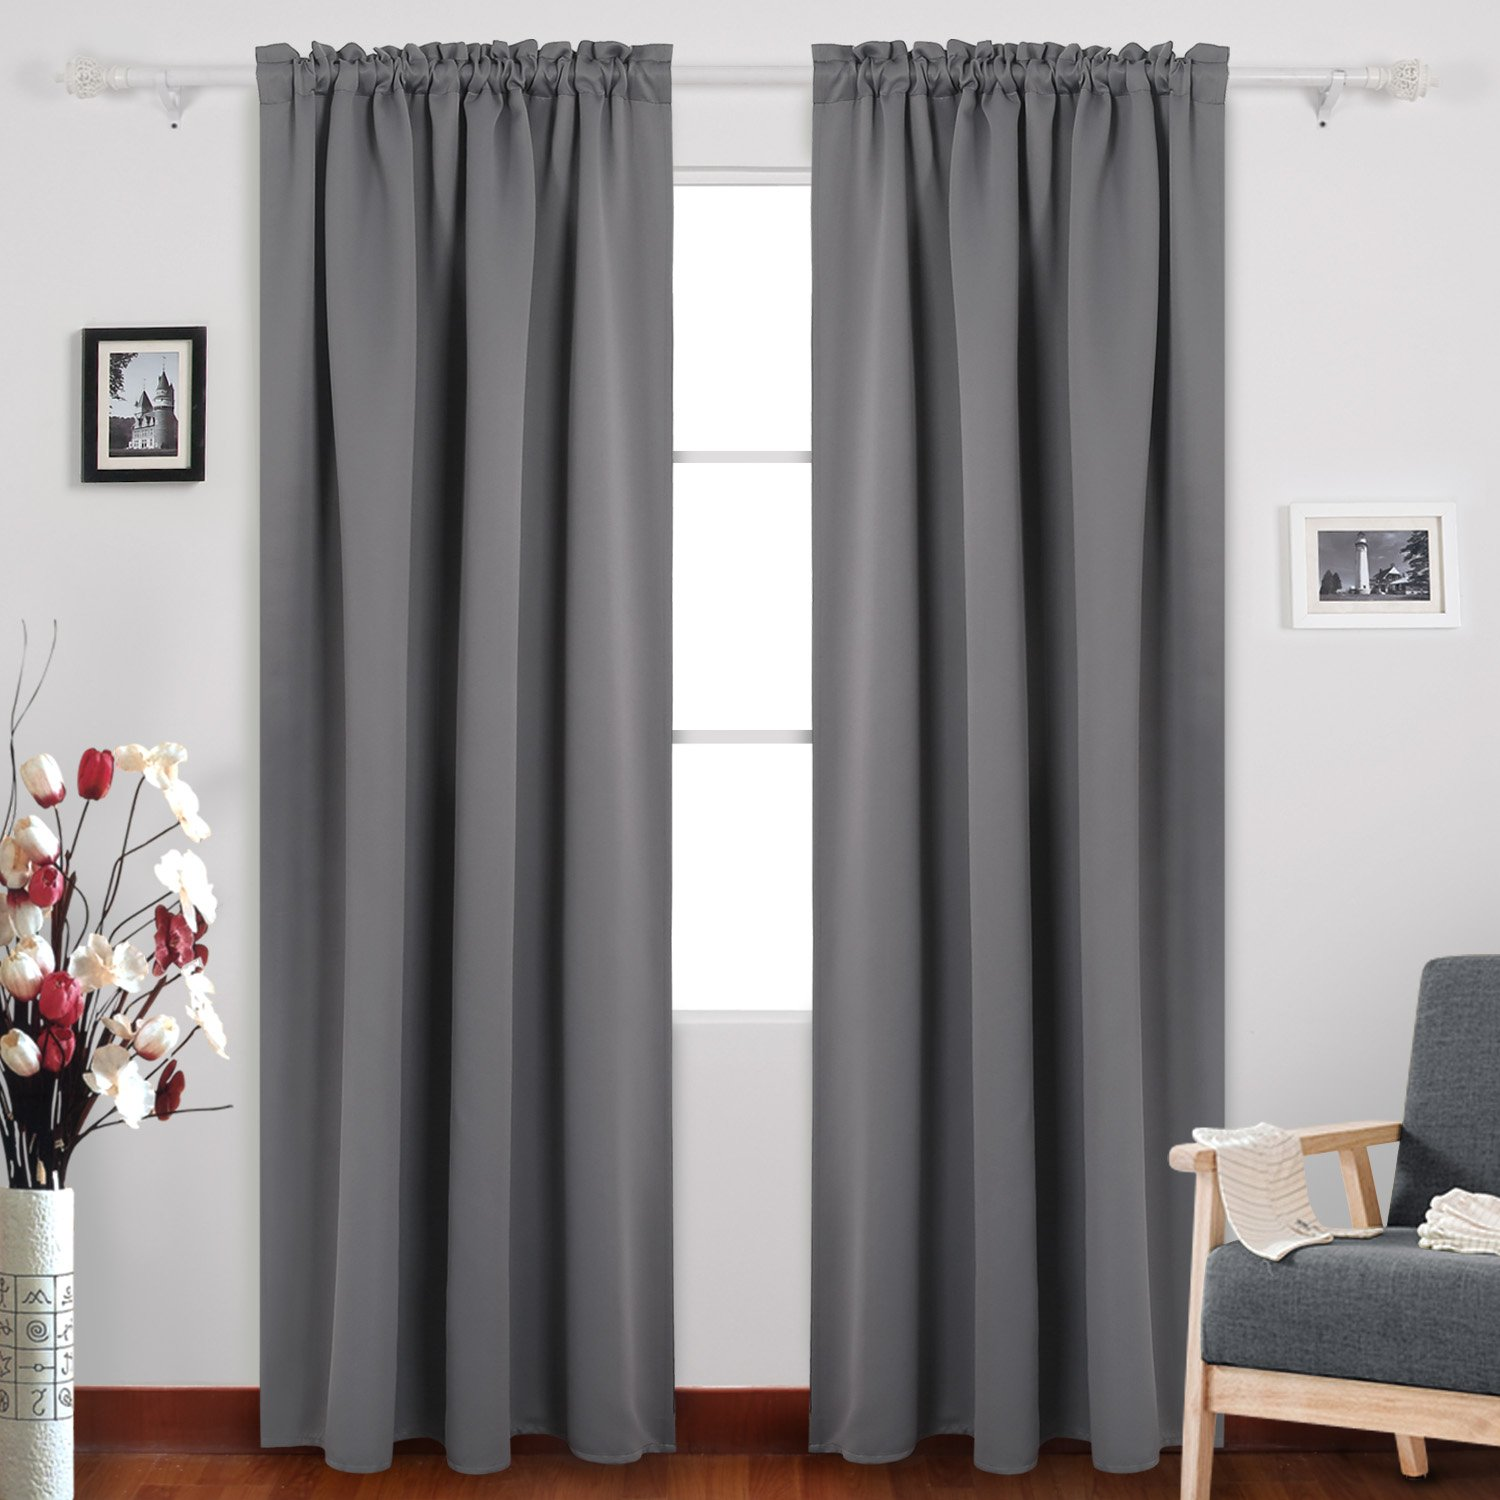 Grey Thermal Curtains Cheap Grey Blackout Curtains Find Grey Blackout Curtains Deals On